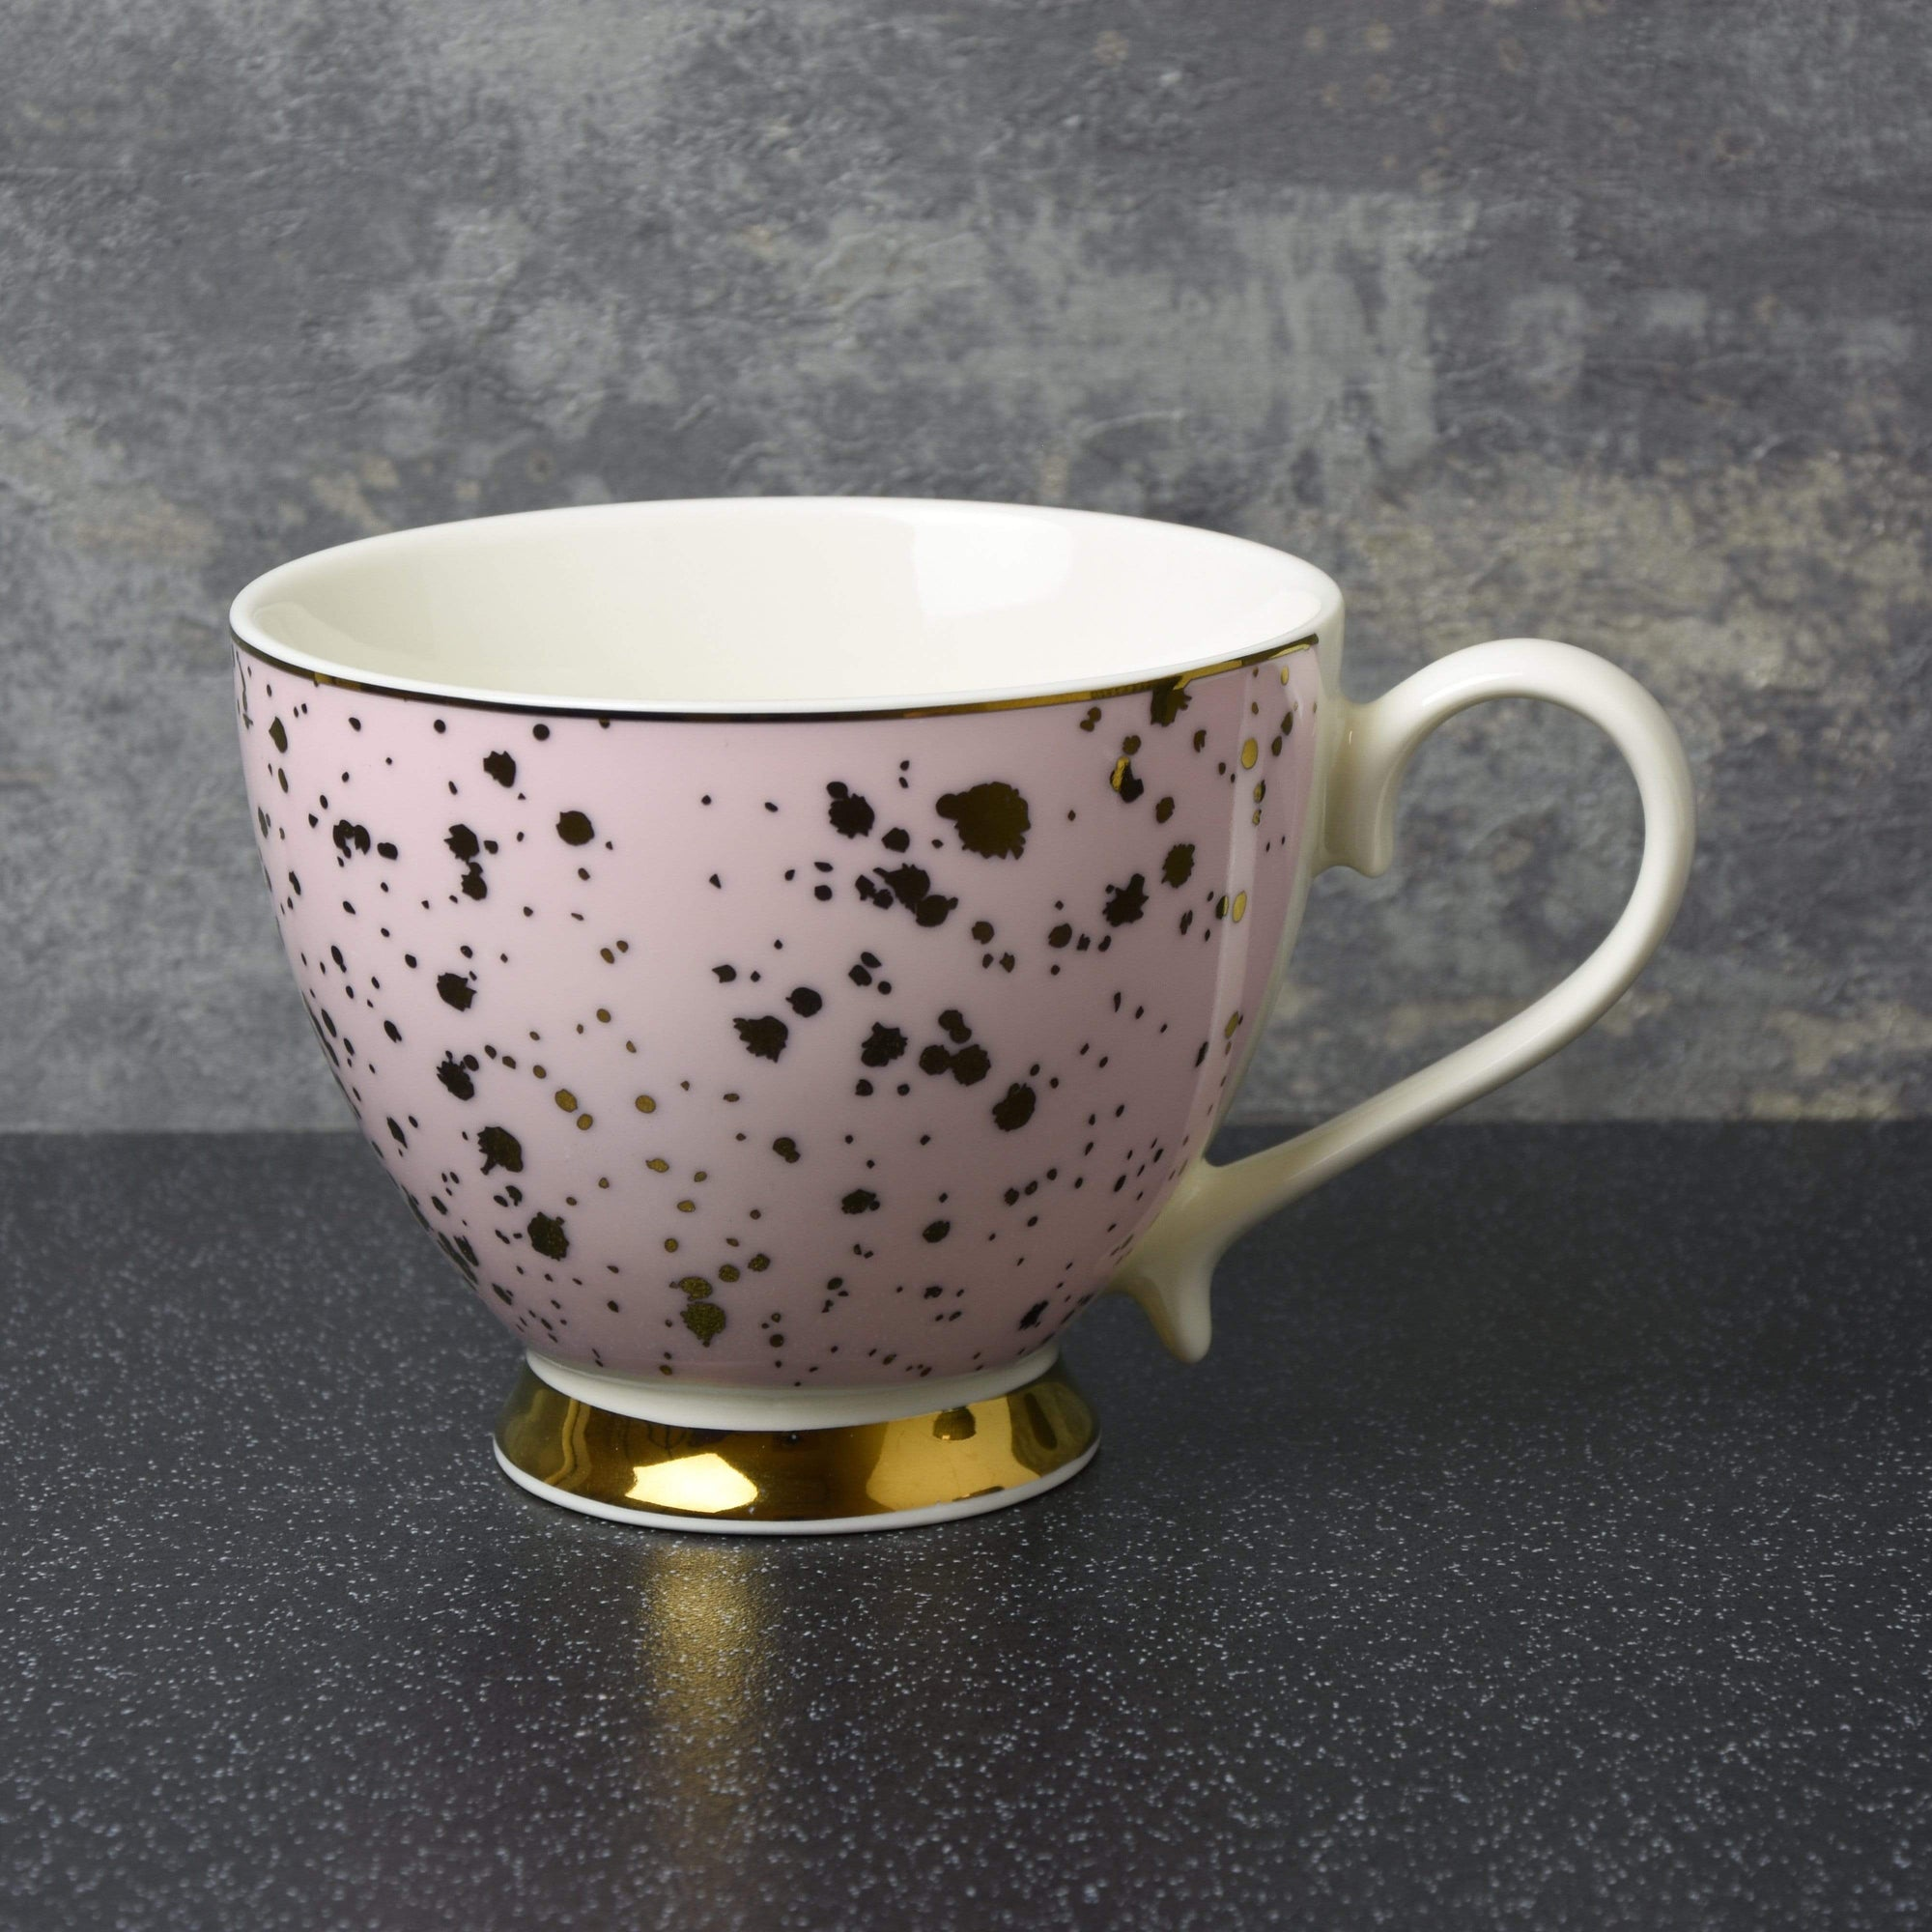 Deco Glam Footed Mug with Speckles Pink and Gold 6.5cm 6PK